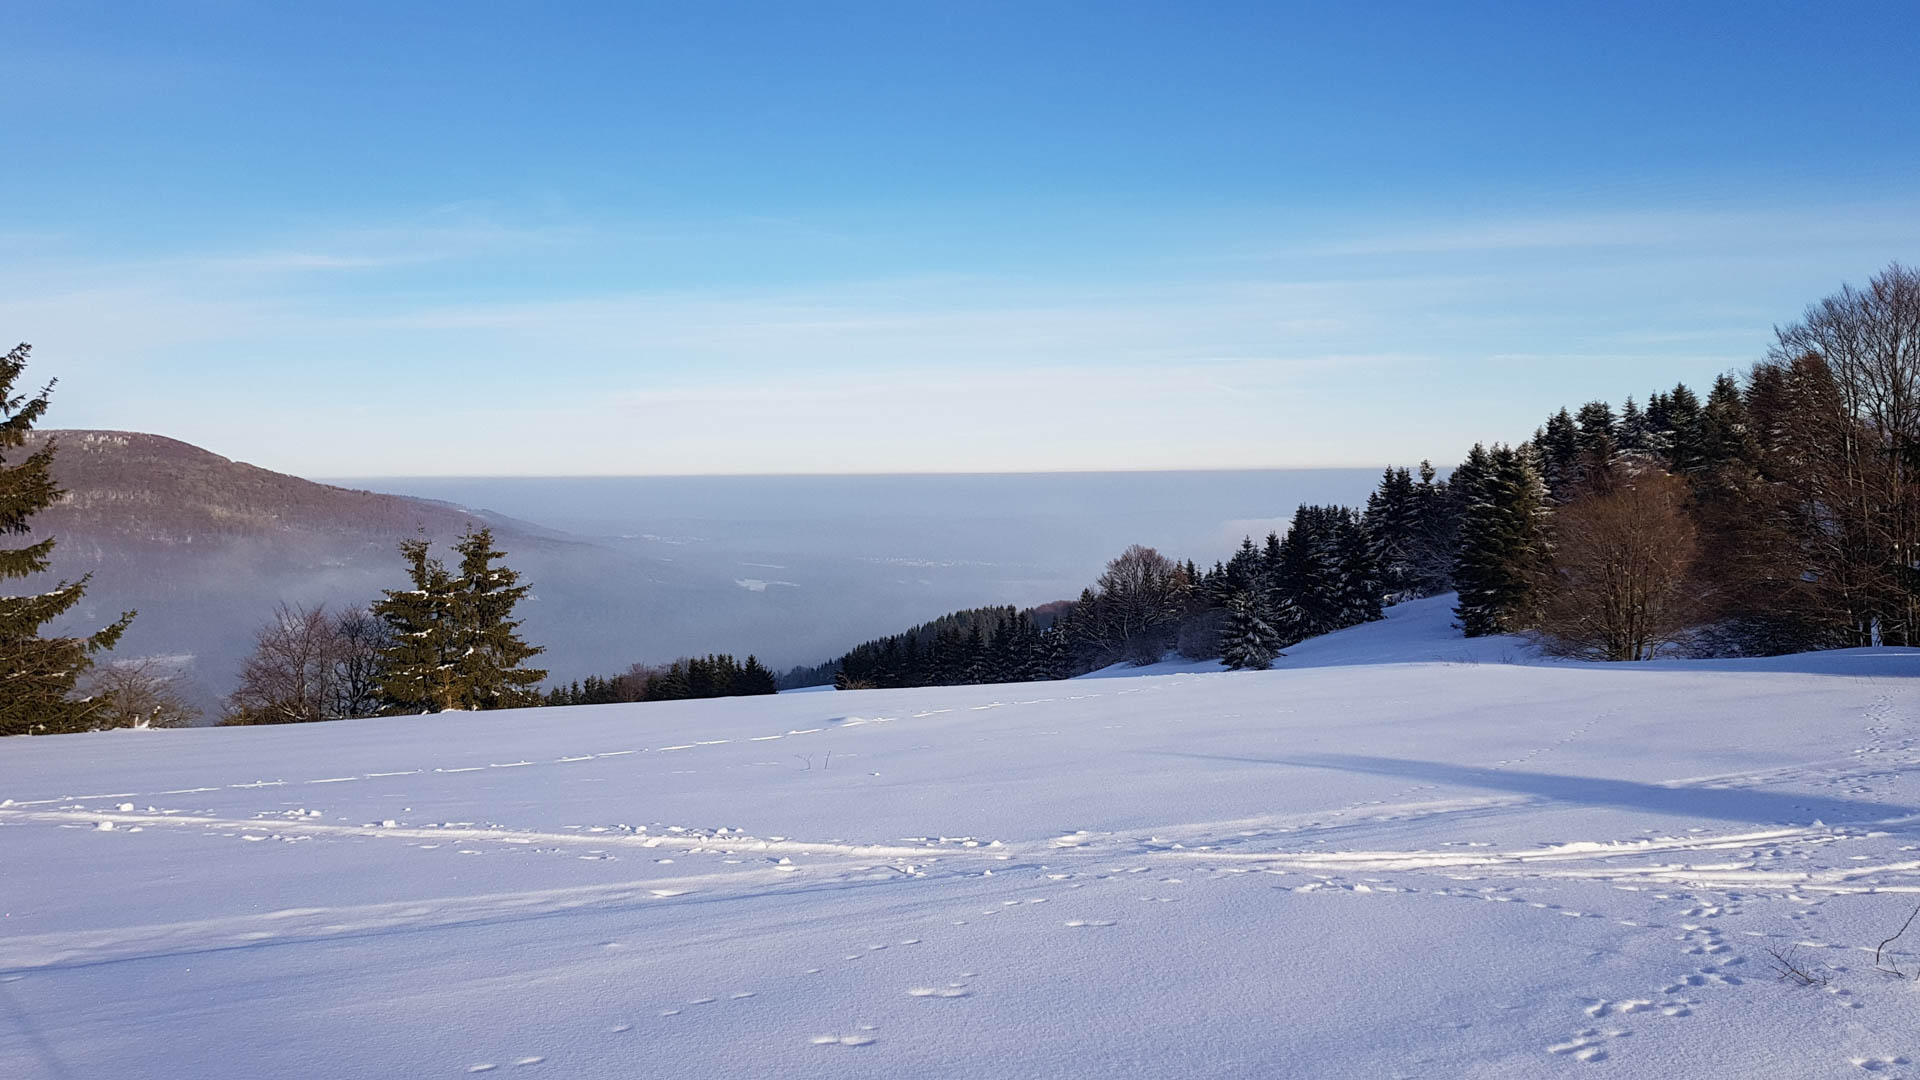 Feuerberg_Winter_2019-02-06-134